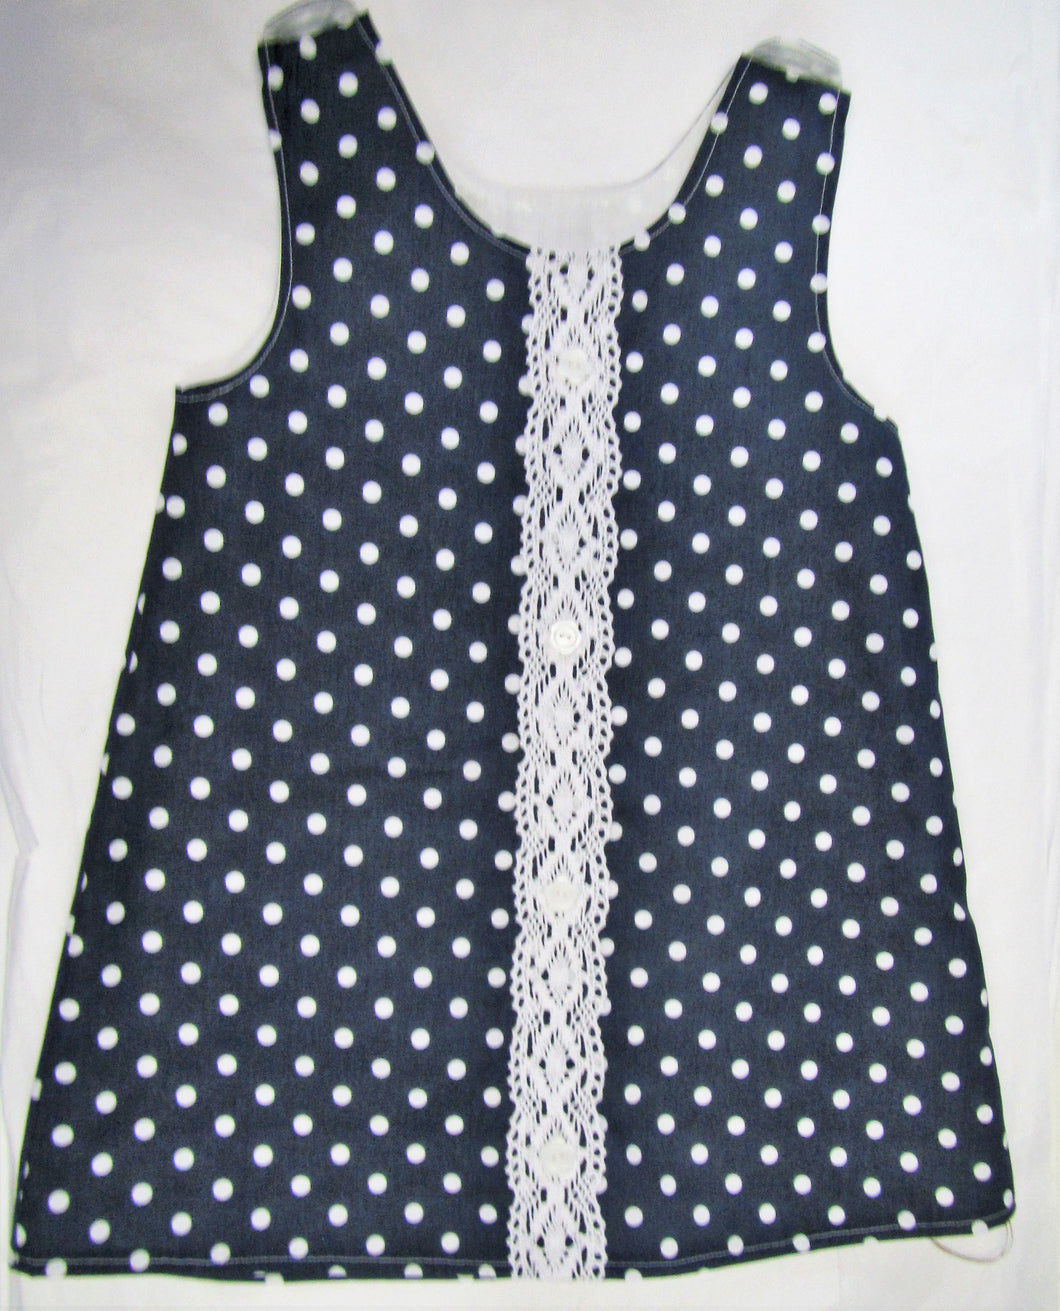 Handcrafted blue polka dot pinafore 2-3 years